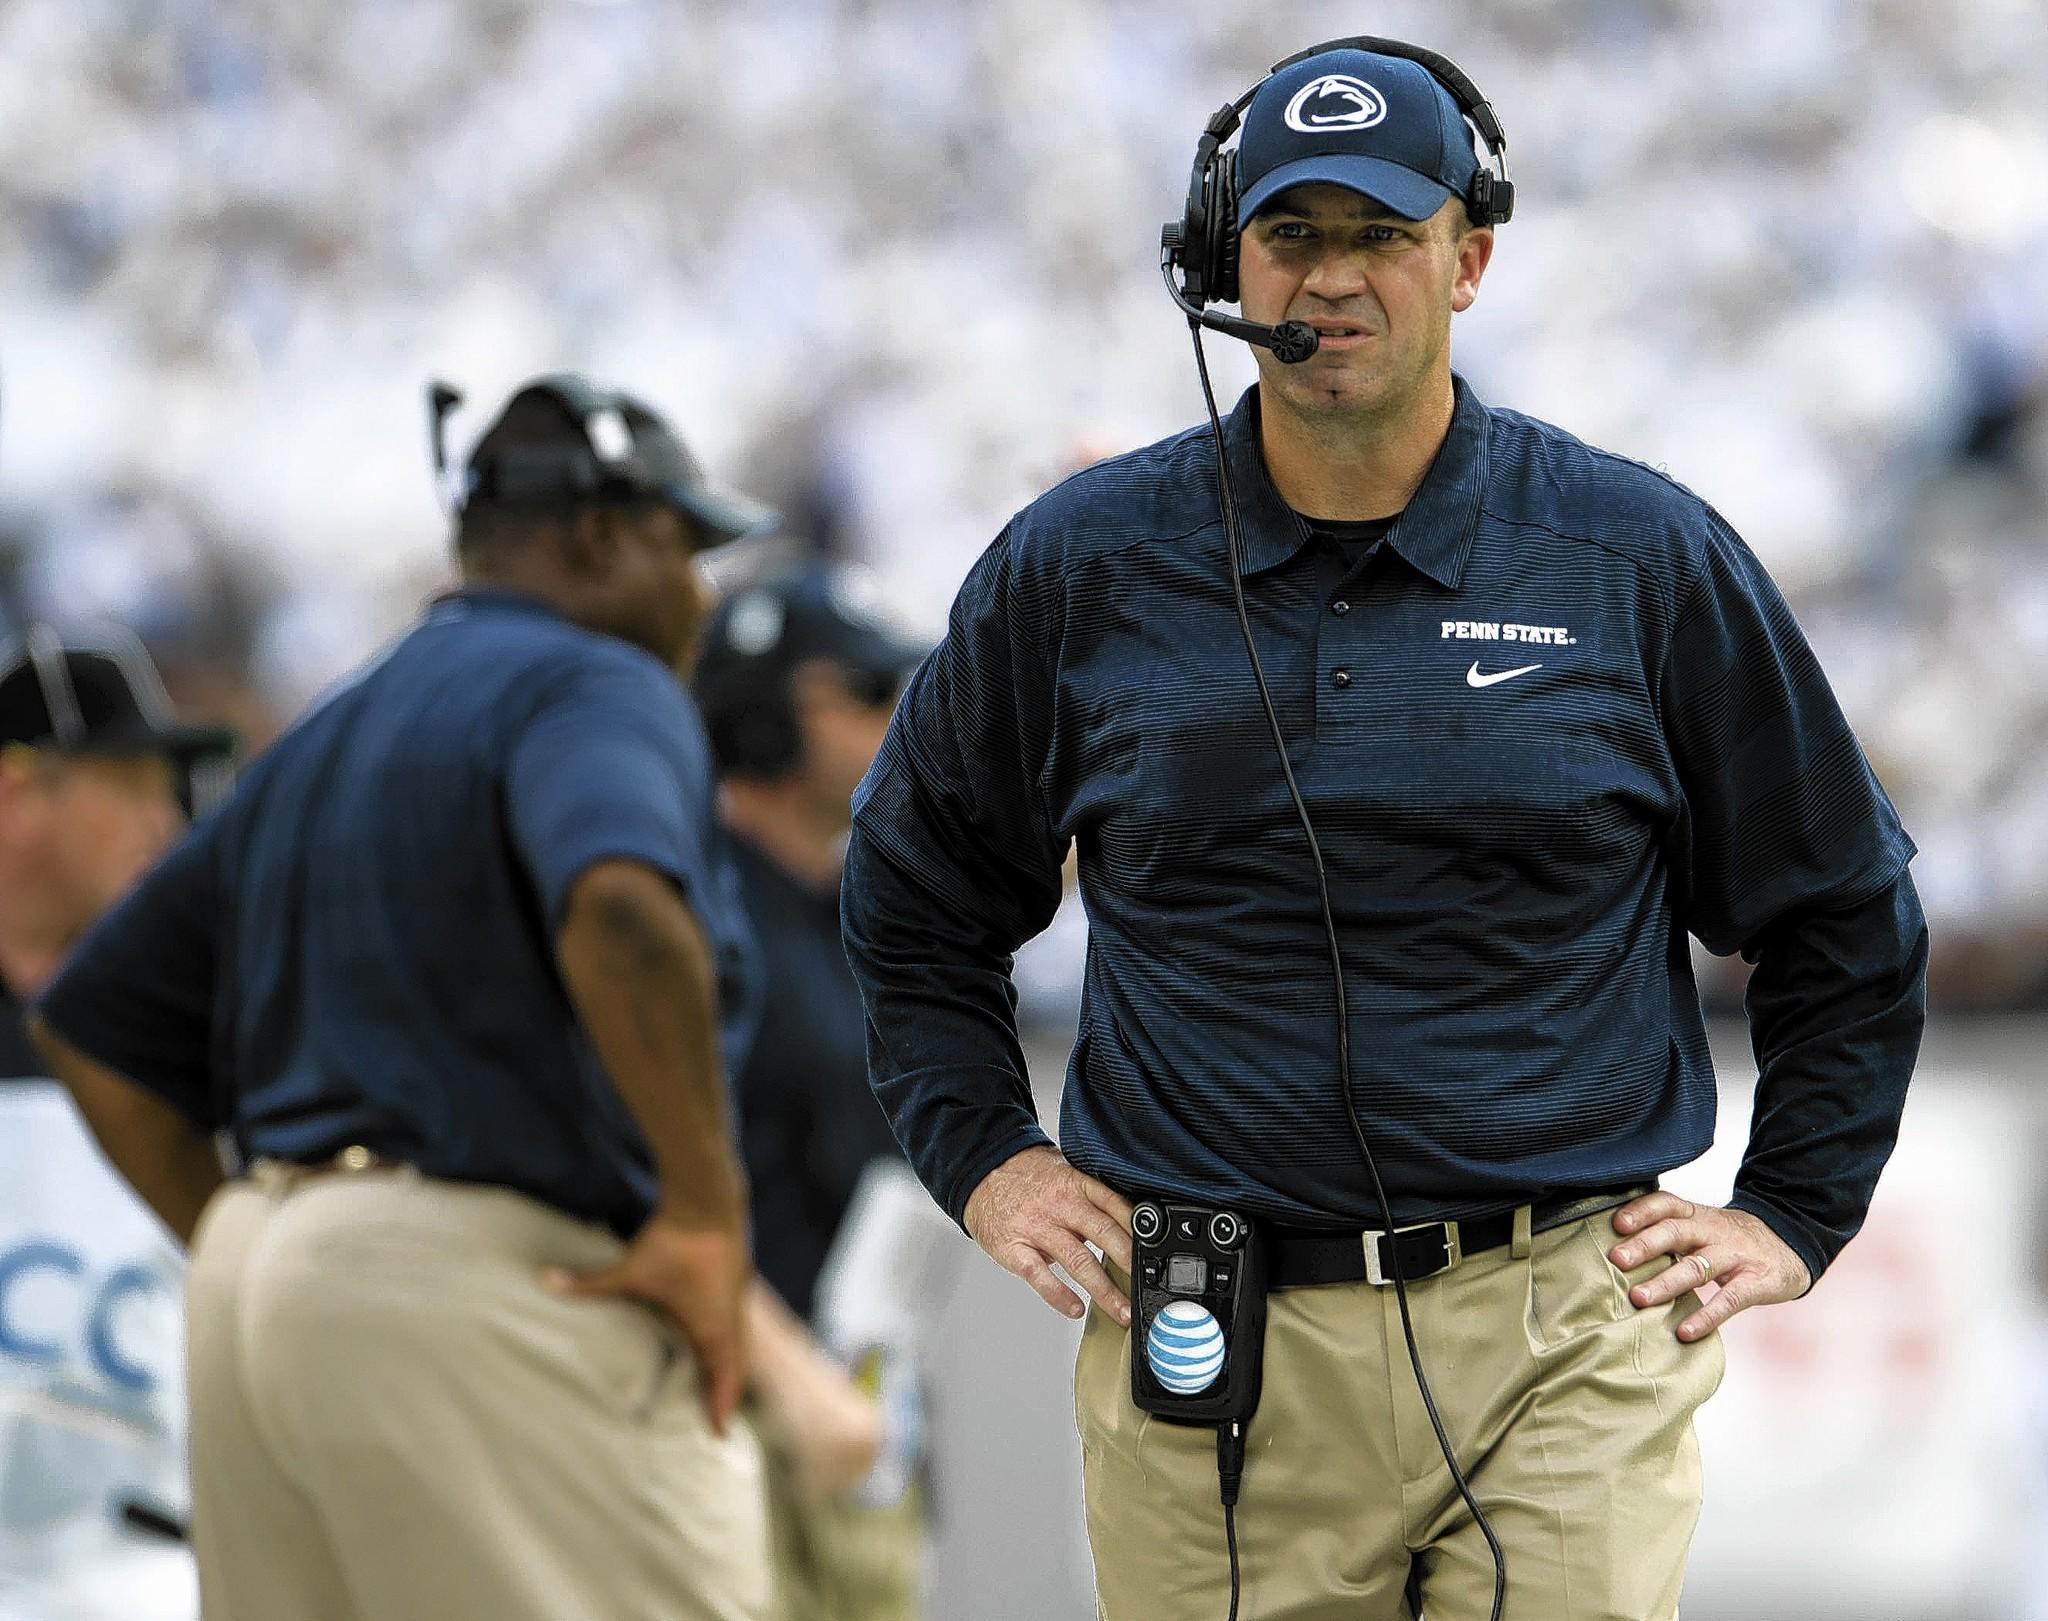 Rumors continue to swirl on the destination of Penn State coach Bill O'Brien.